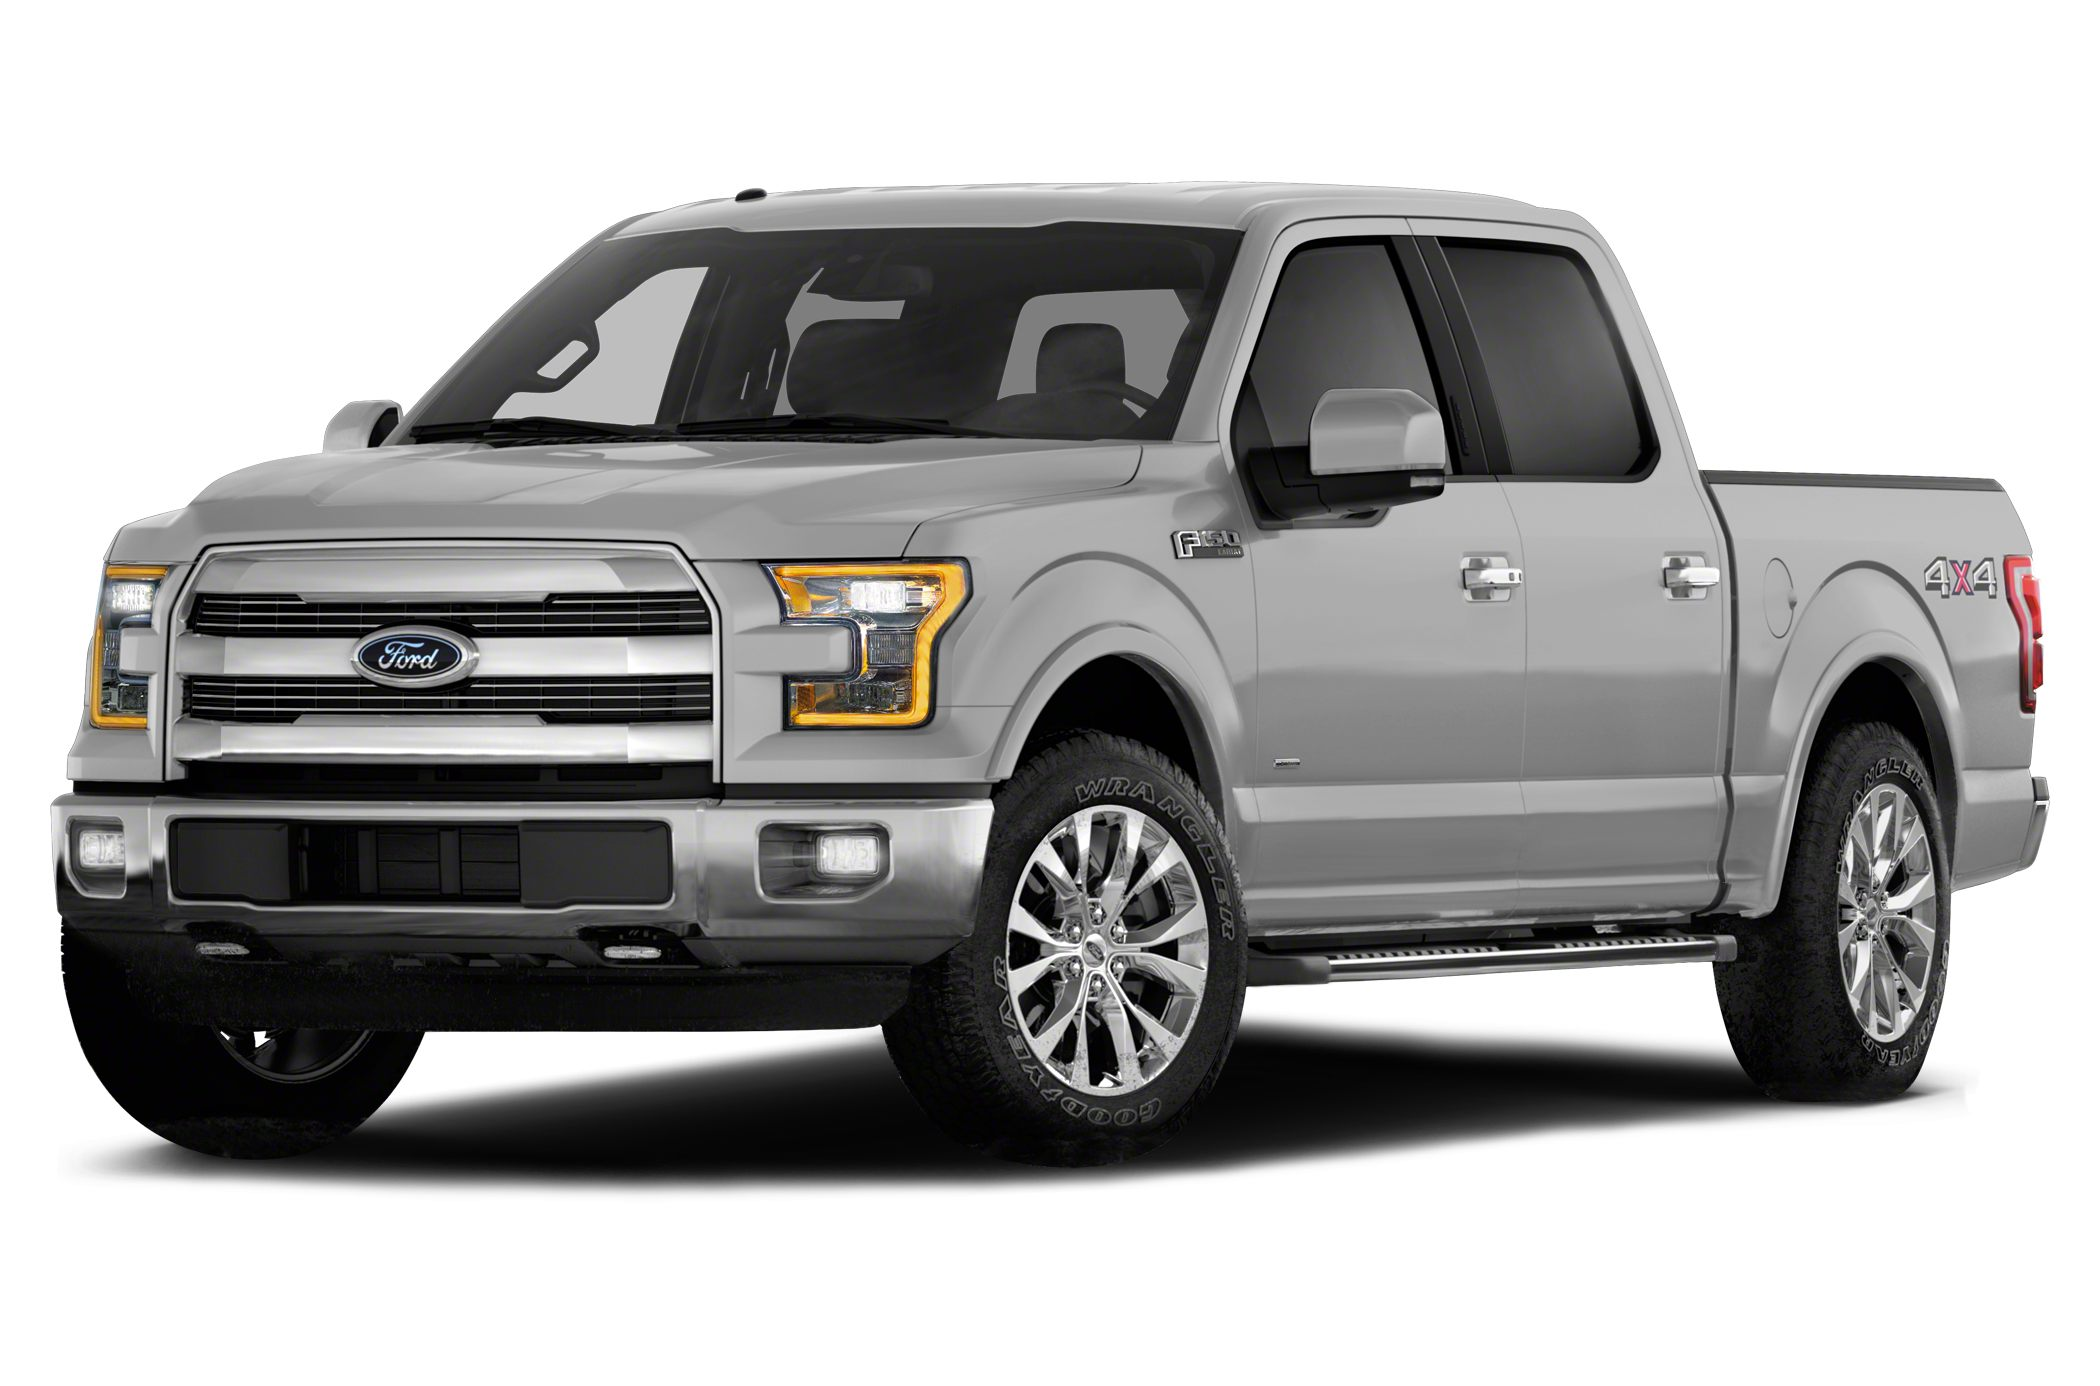 2015 Ford F150 Lariat Crew Cab Pickup for sale in Pine Bluff for $57,805 with 10 miles